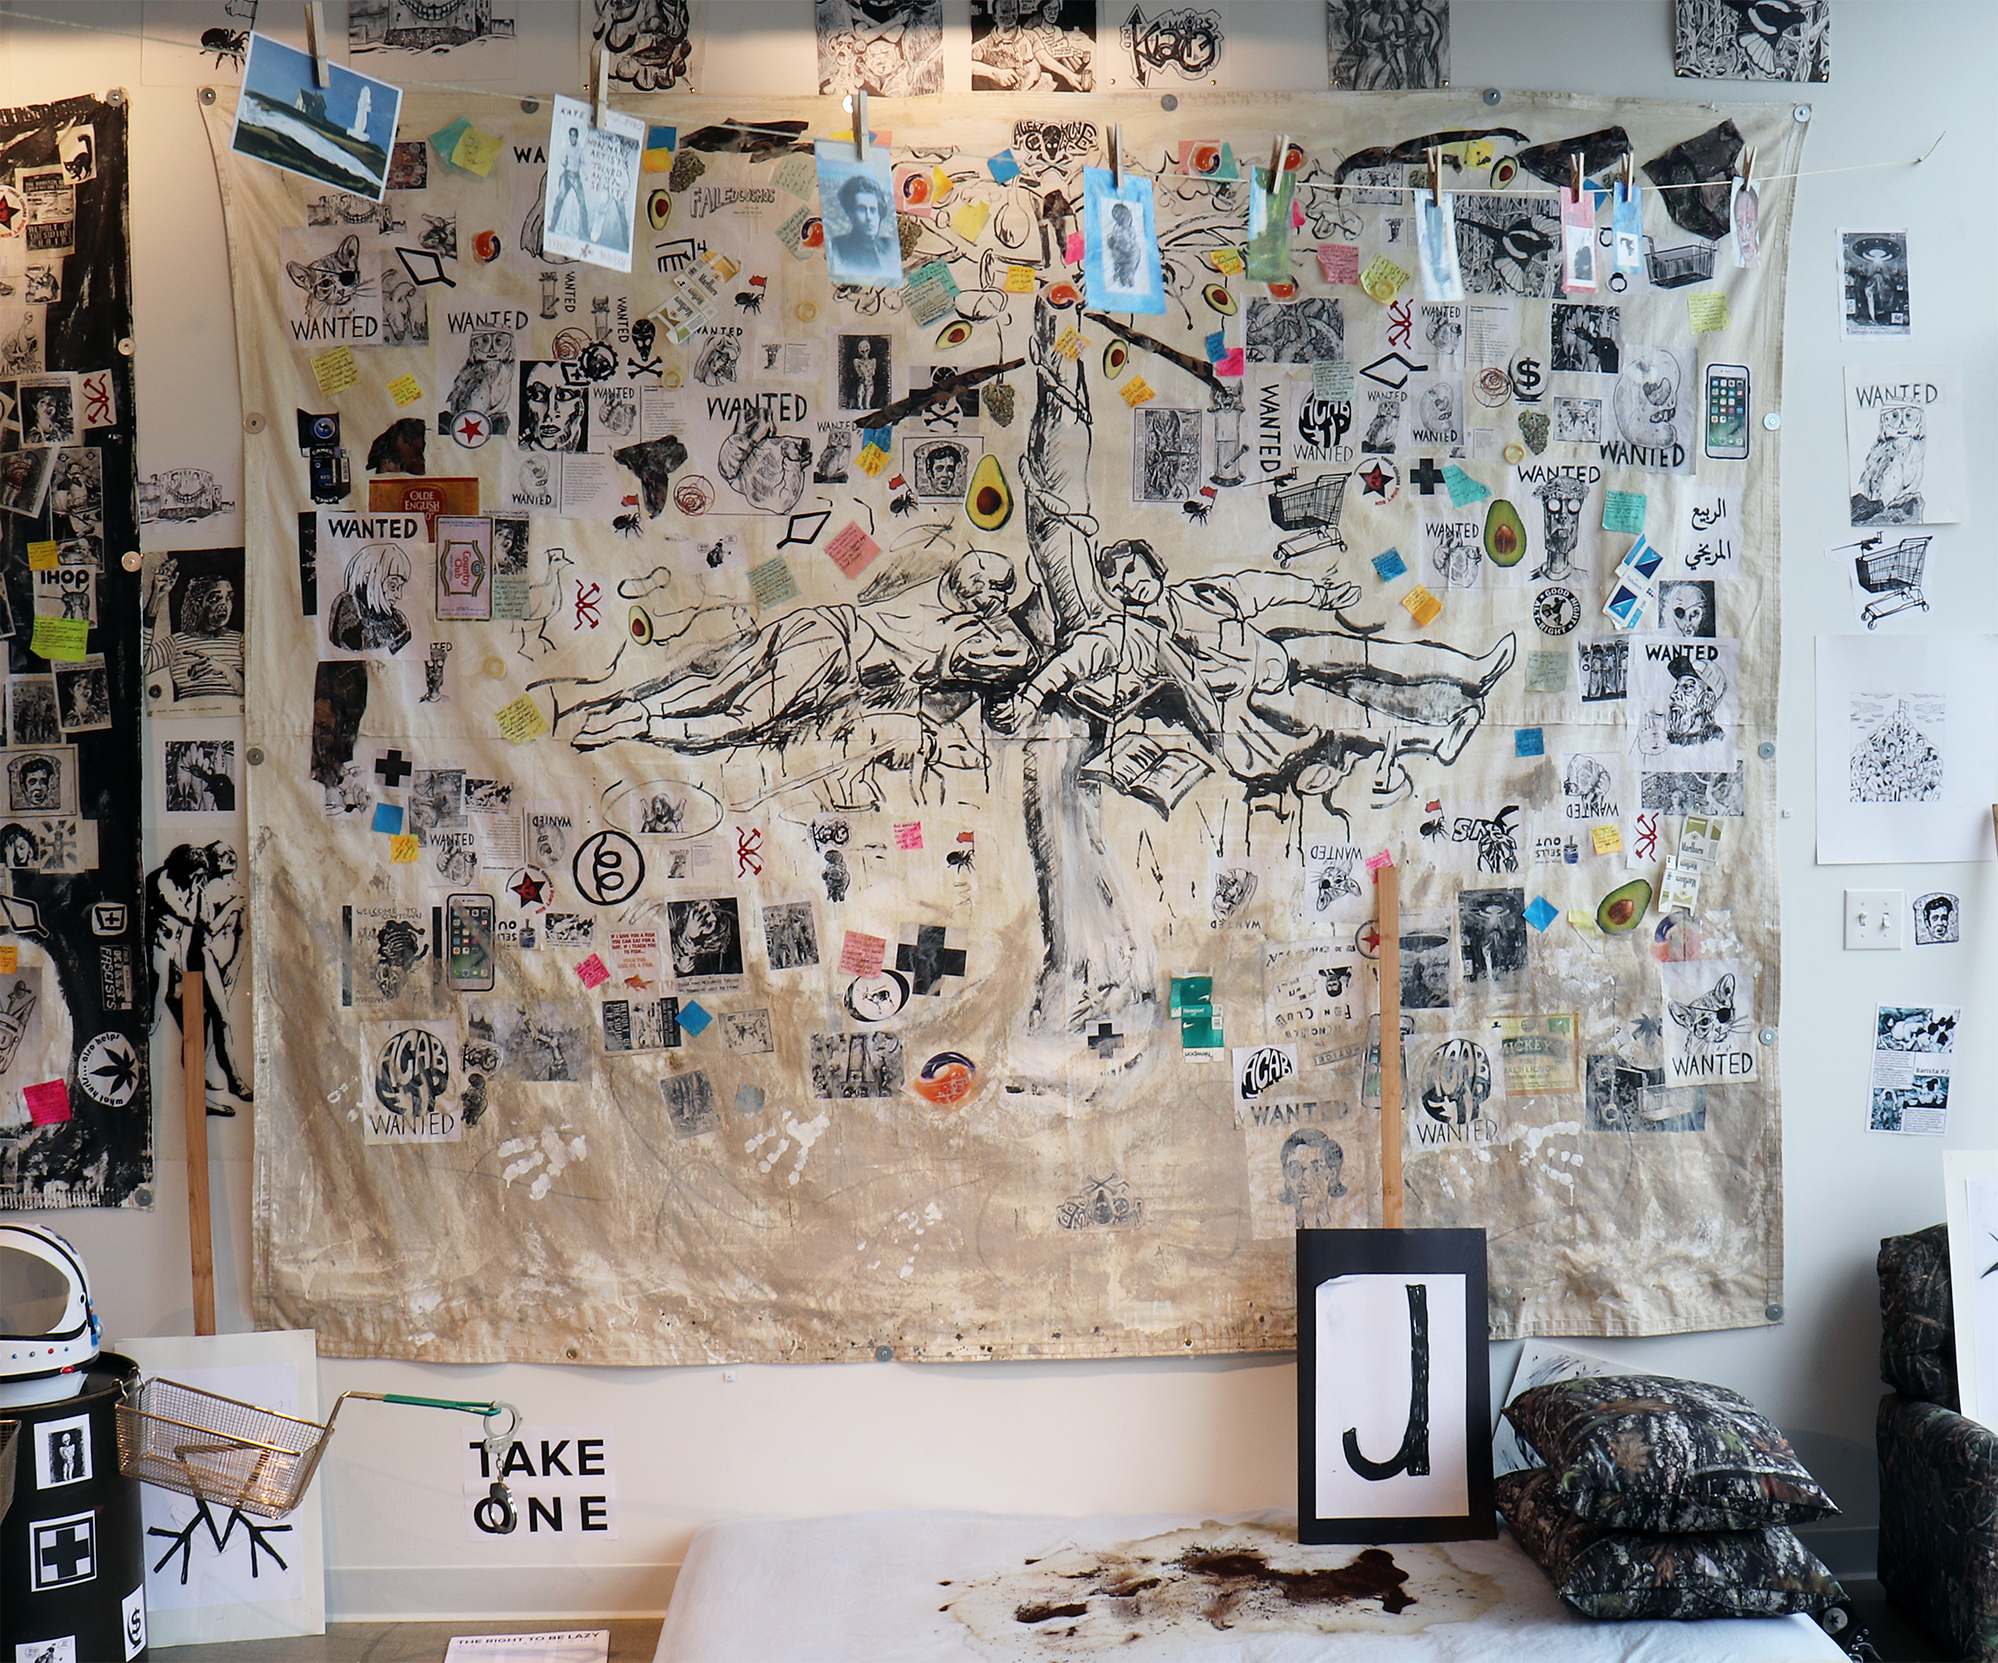 New Lubberland (The Barista Who Disappeared),  by Adam Turl .  Acrylic, marker, Sharpie, clay slip, condoms, photocopies, stickers, coffee, post-it notes, camo and mixed media on canvas tarp (2018).